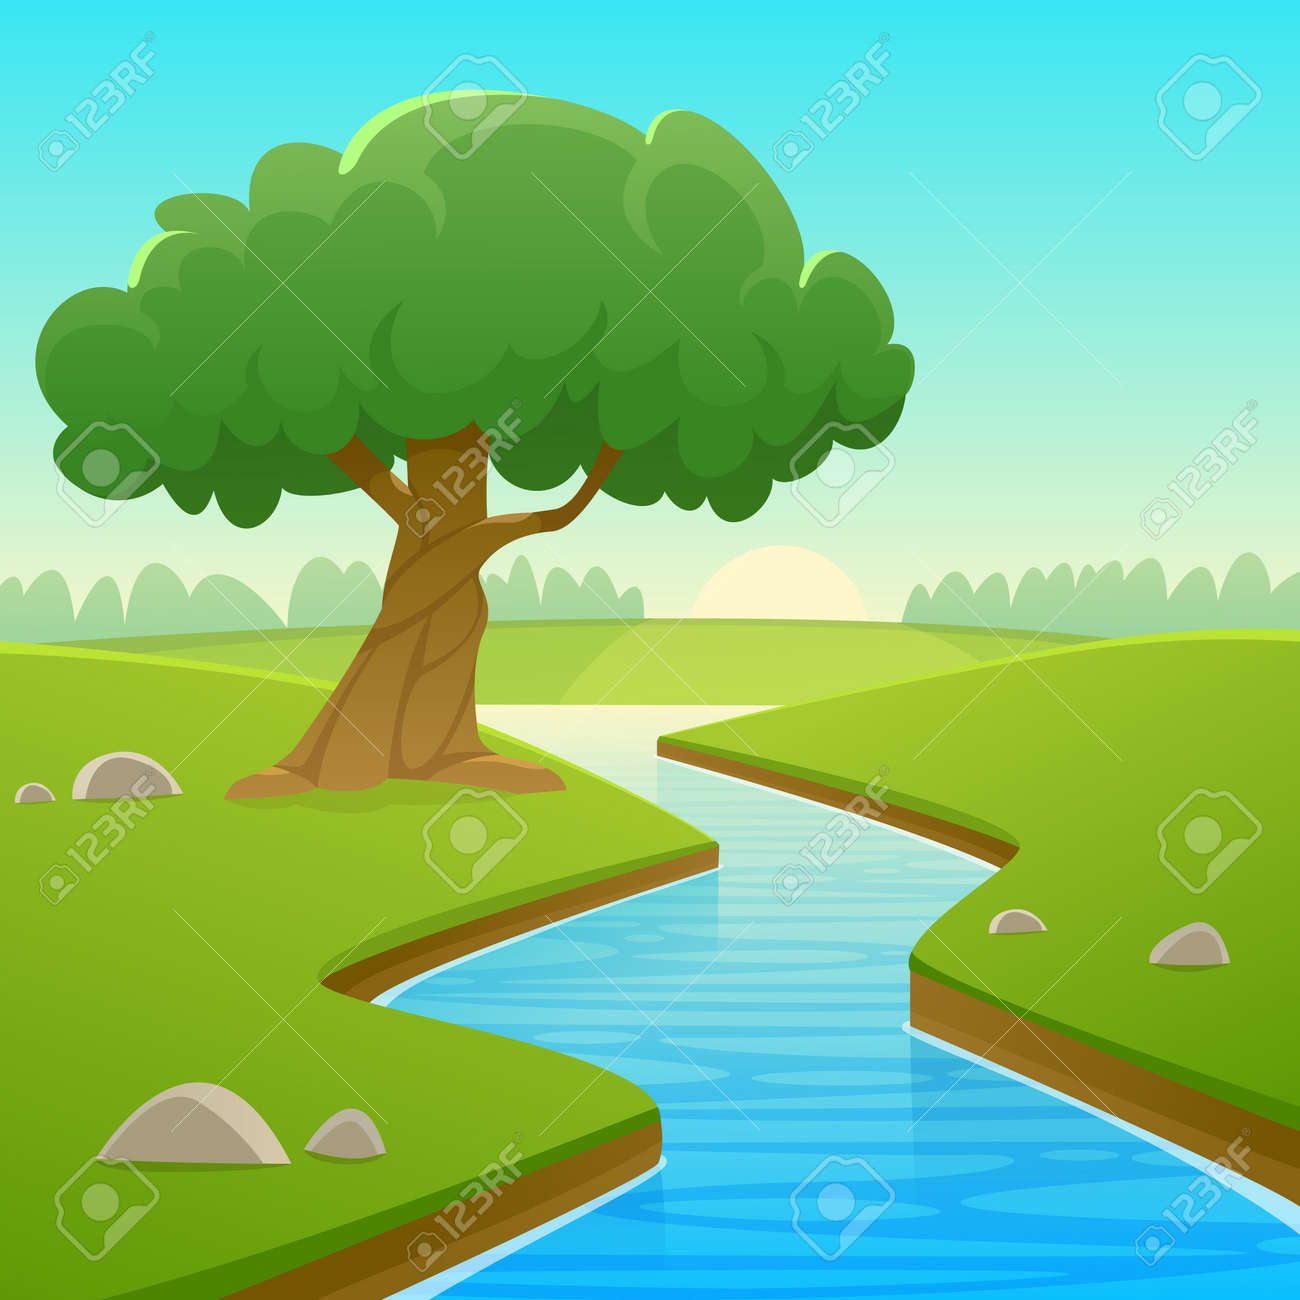 Cool Landscape Summer - 60638246-cartoon-illustration-of-summer-rural-landscape-with-river-over-land-and-tree-  Pictures_95238.jpg